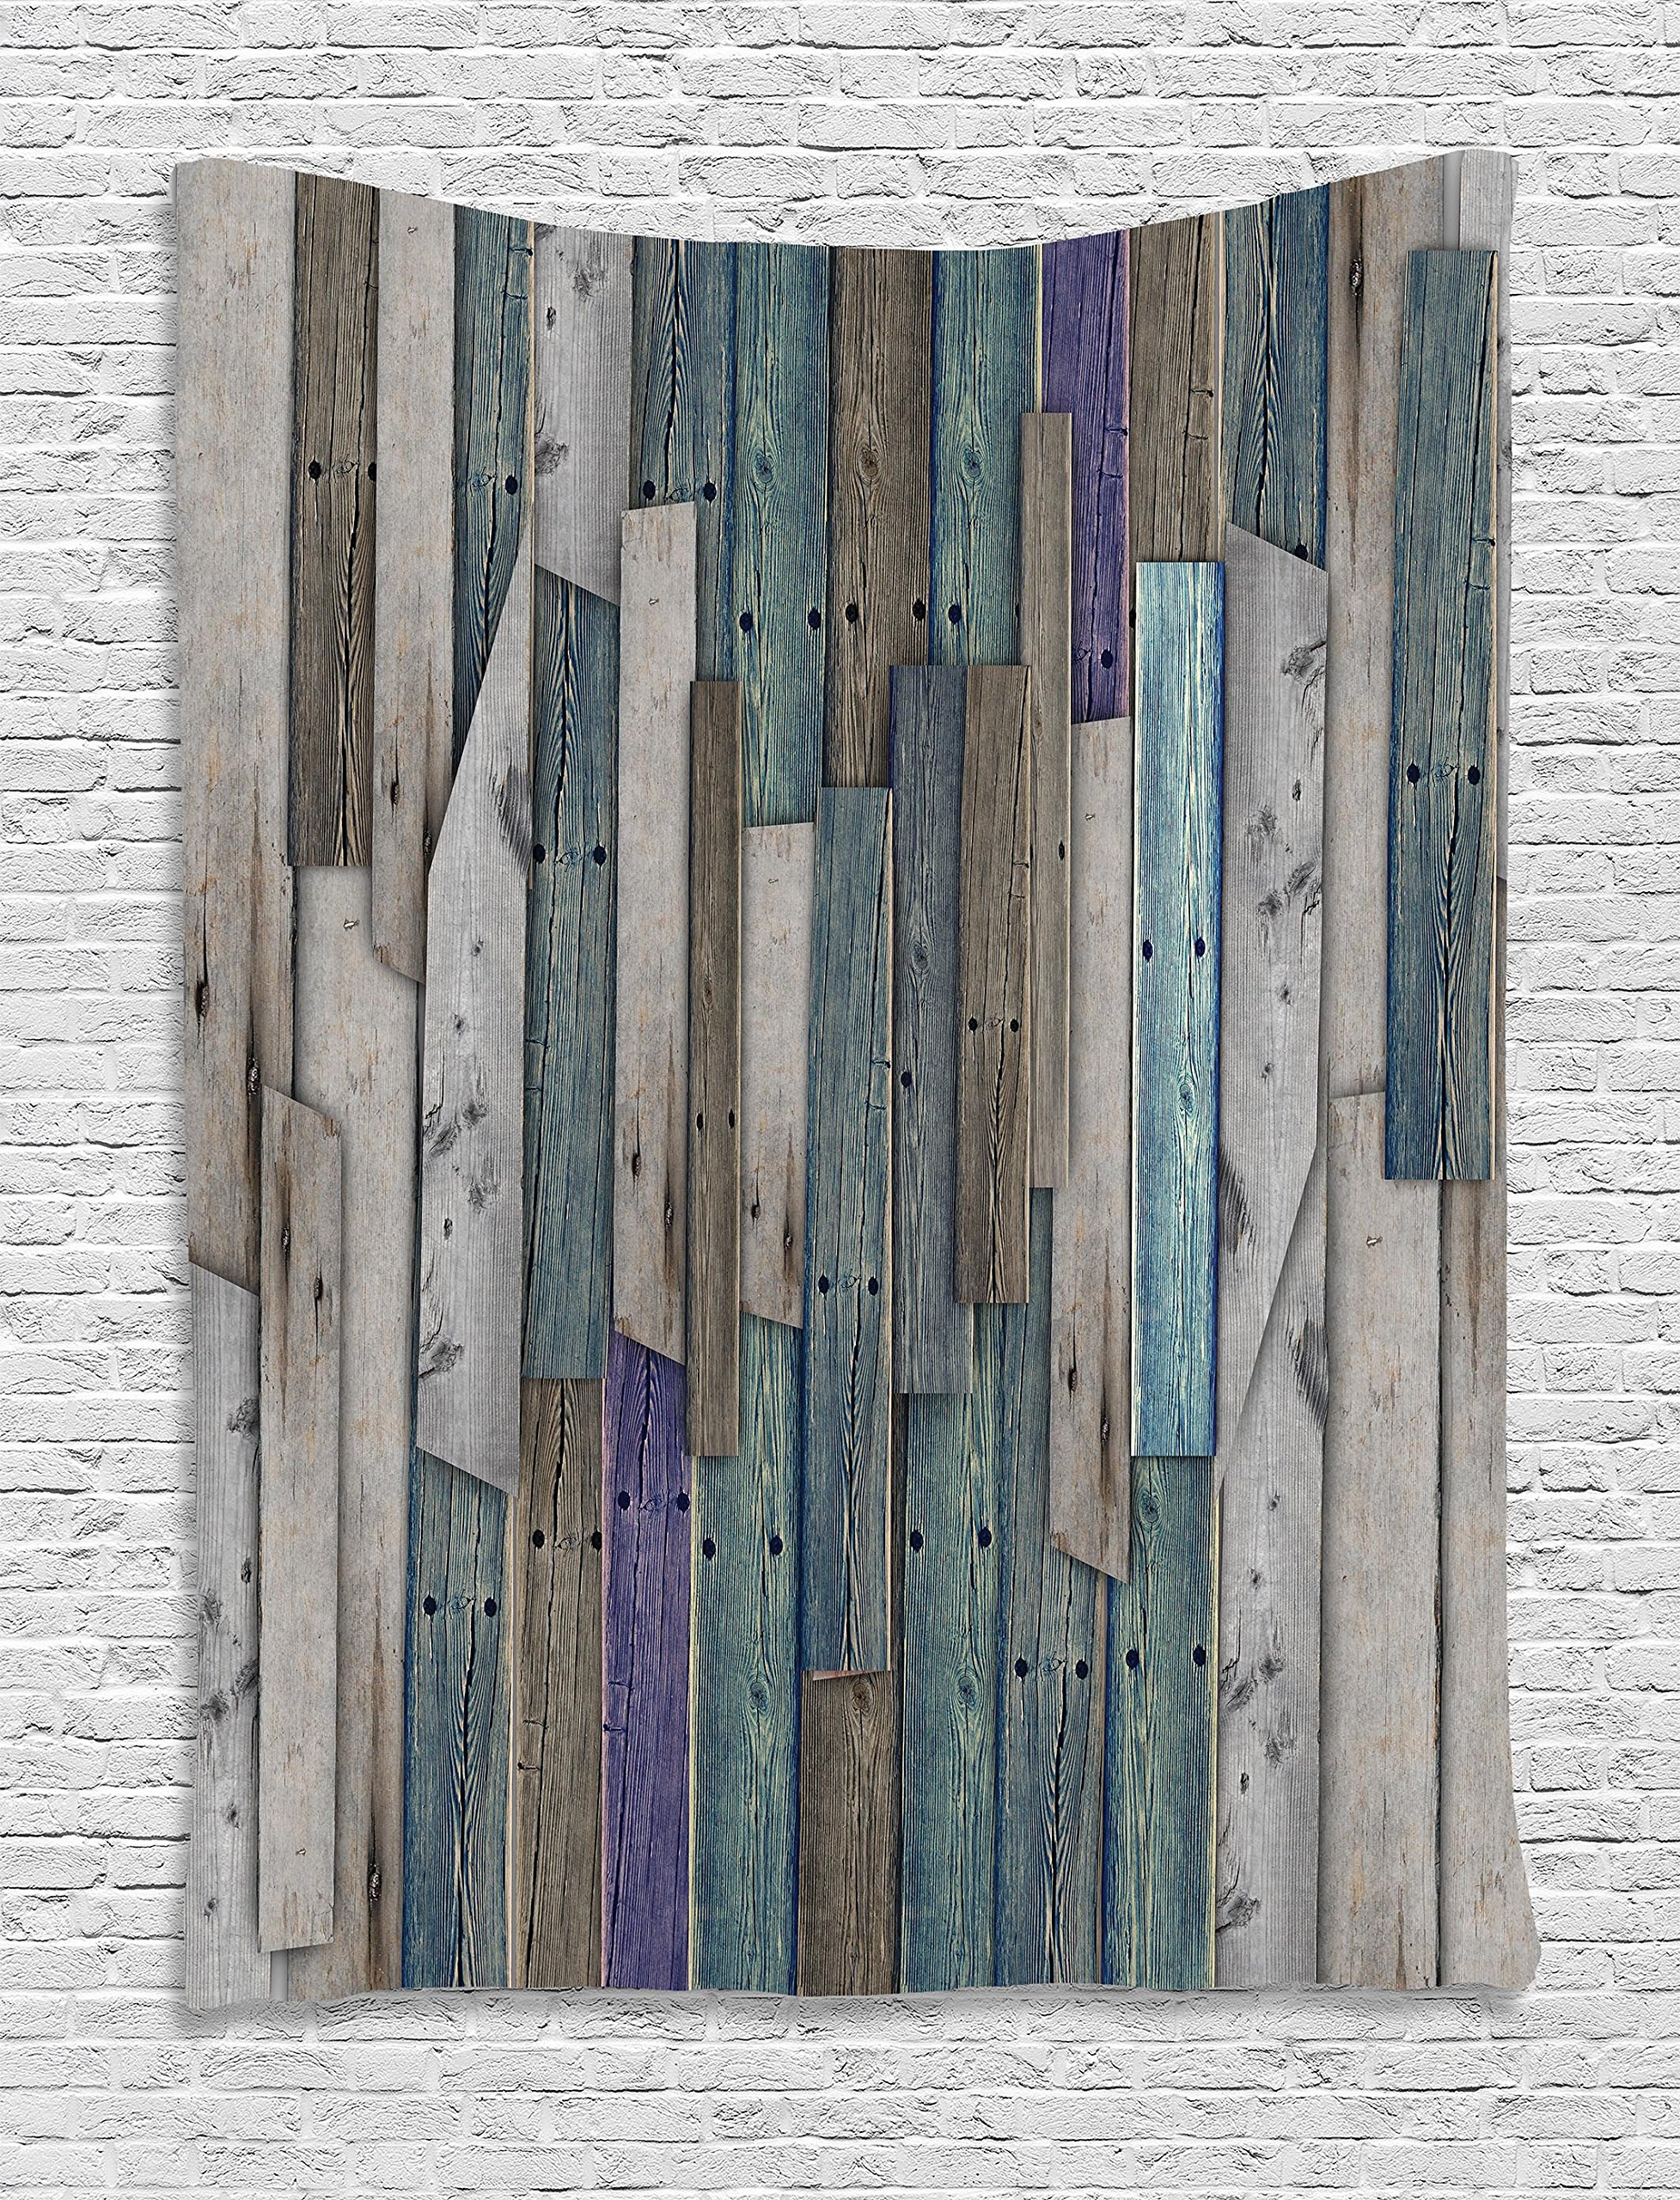 Ambesonne Wooden Wall Hanging Tapestry, Blue Grey Grunge Rustic Planks Barn House Wood Nails Lodge Hardwood Graphic Print, Bedroom Living Room Dorm Decor, 40 W x 60 L inches, Teal Purple Grey